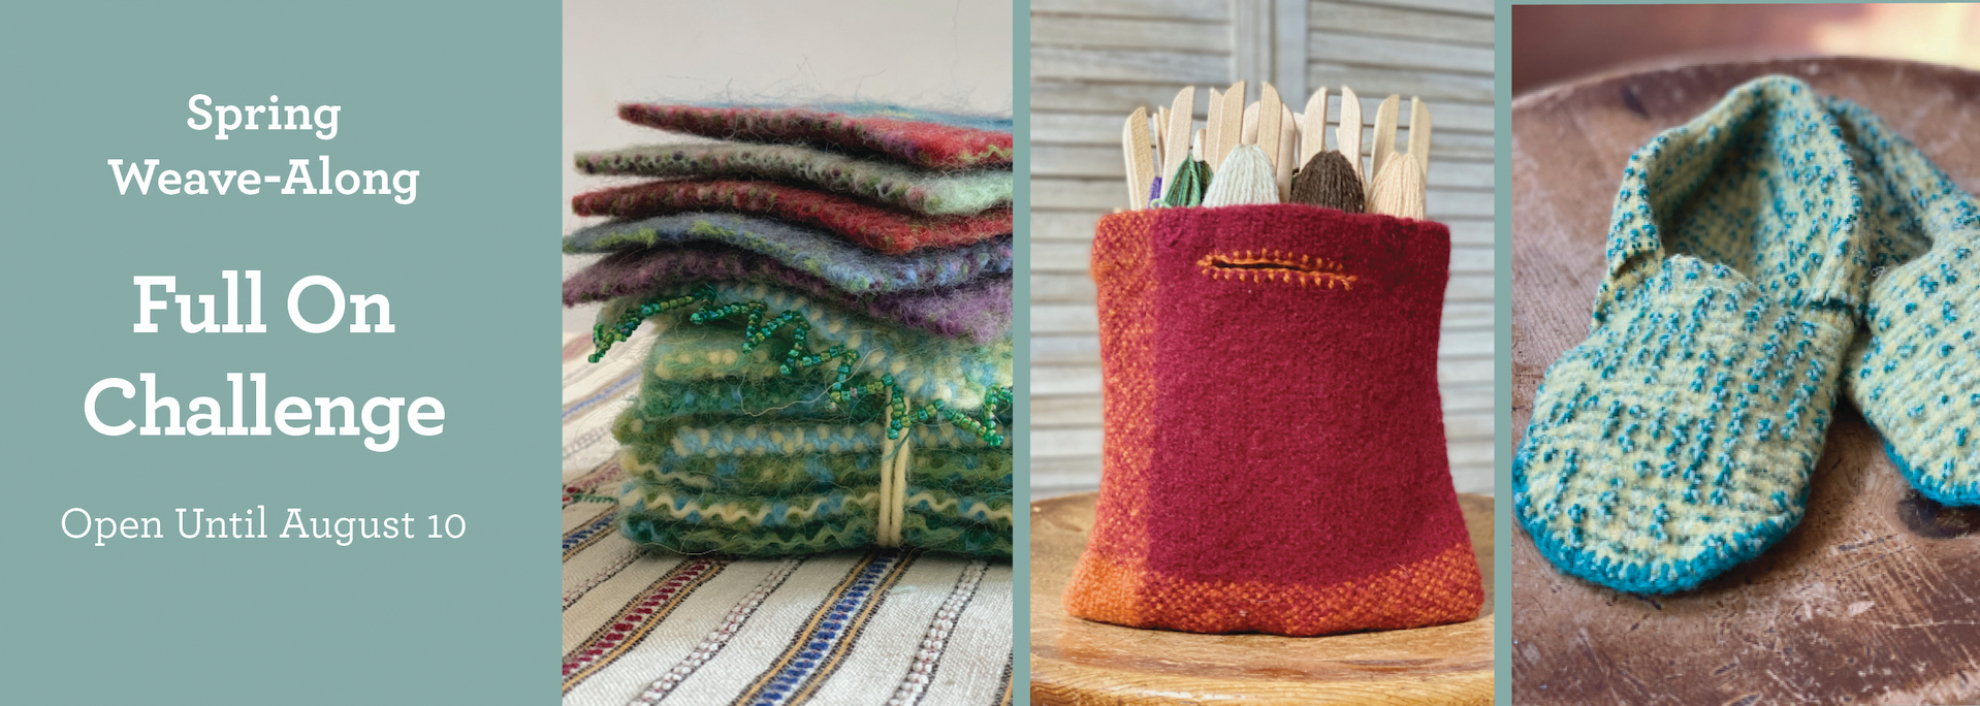 Spring Weave Along Open Until August 10. Photos of fulled projects--coasters, a bag, slippers